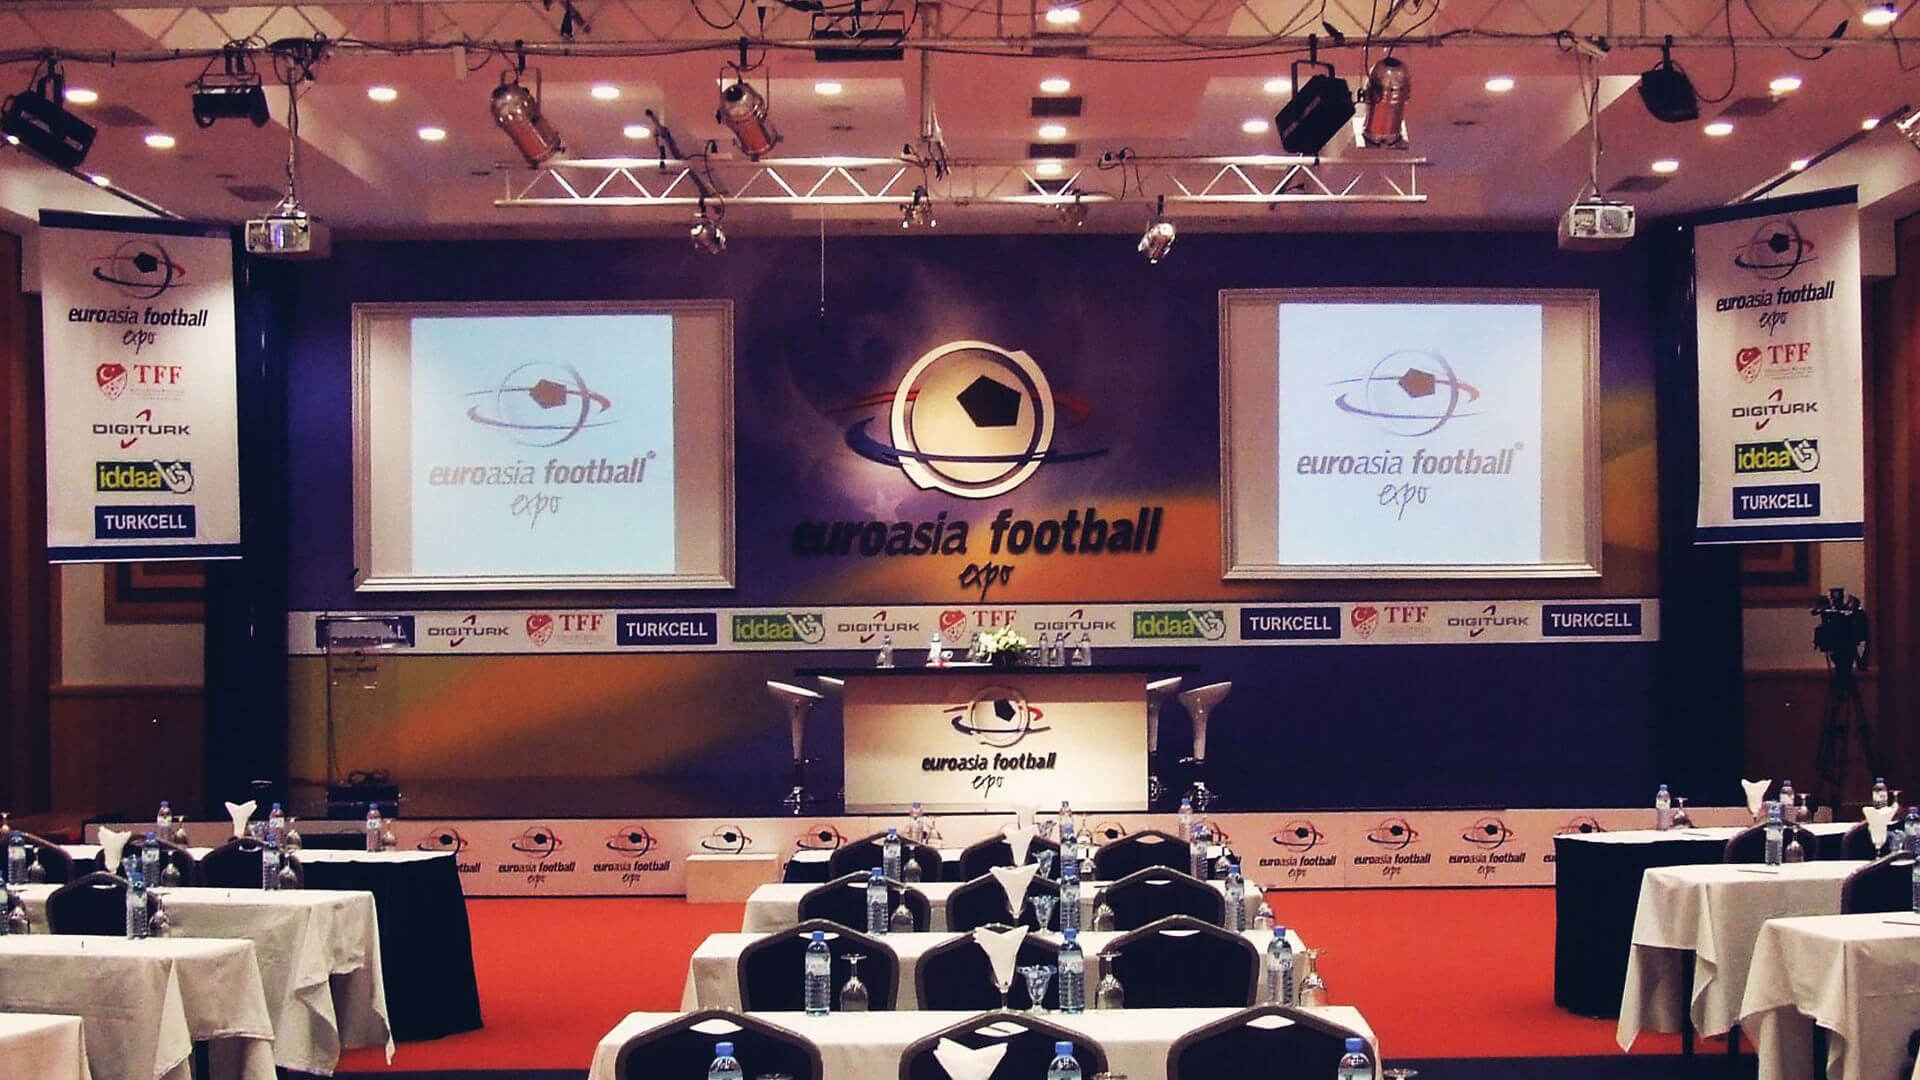 euroasia football expo-1-1920x1080